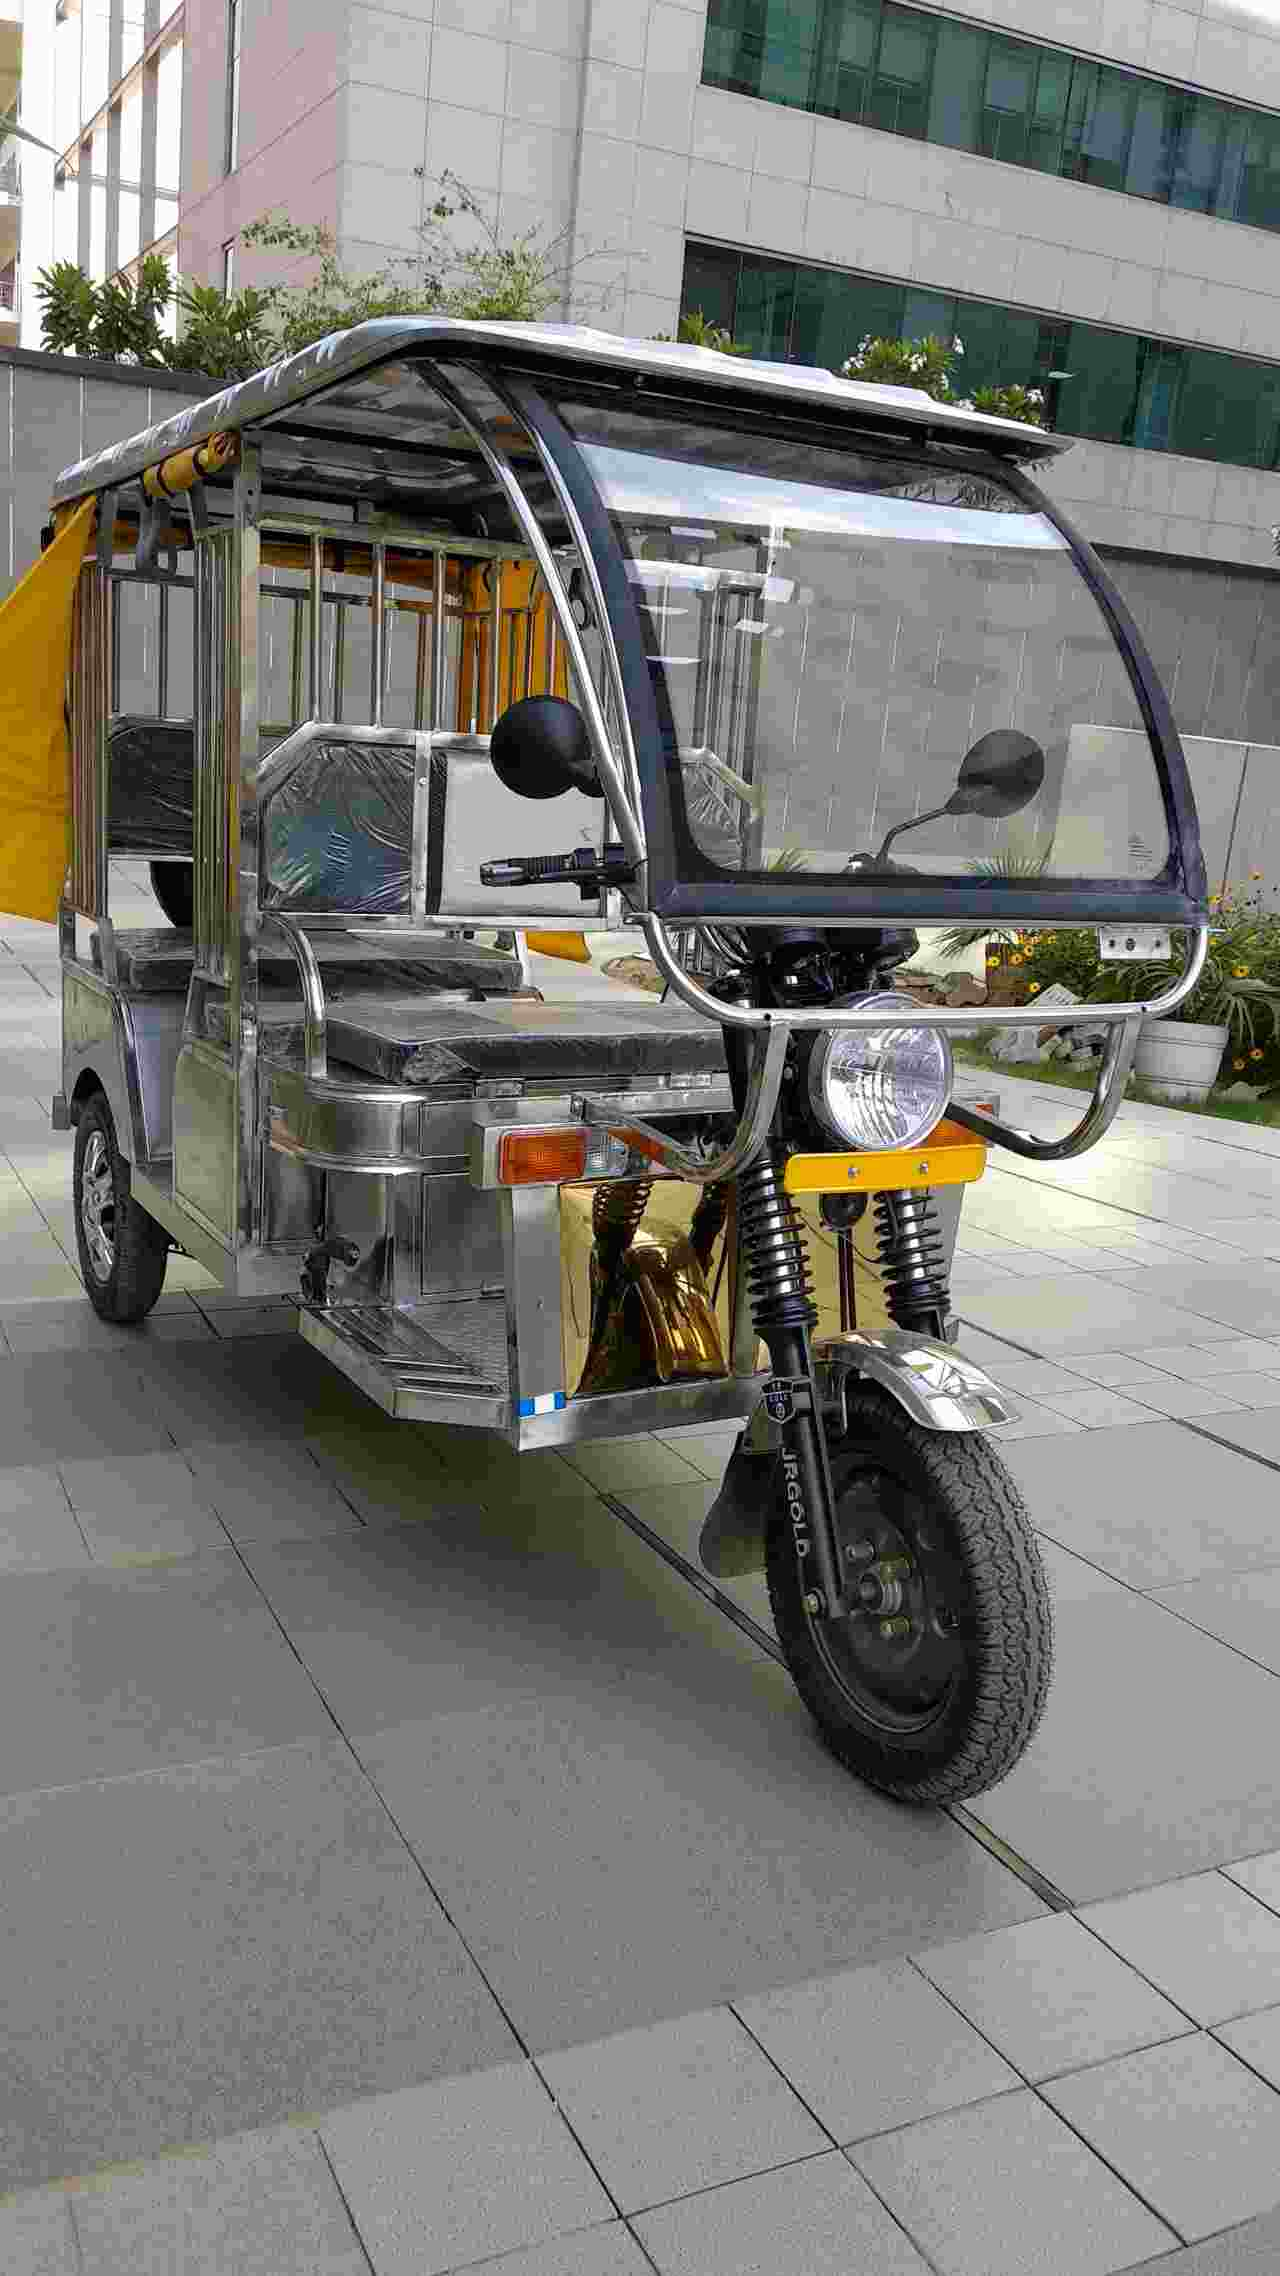 Stainless steel e-rickshaws: Efficient, sturdier alternatives